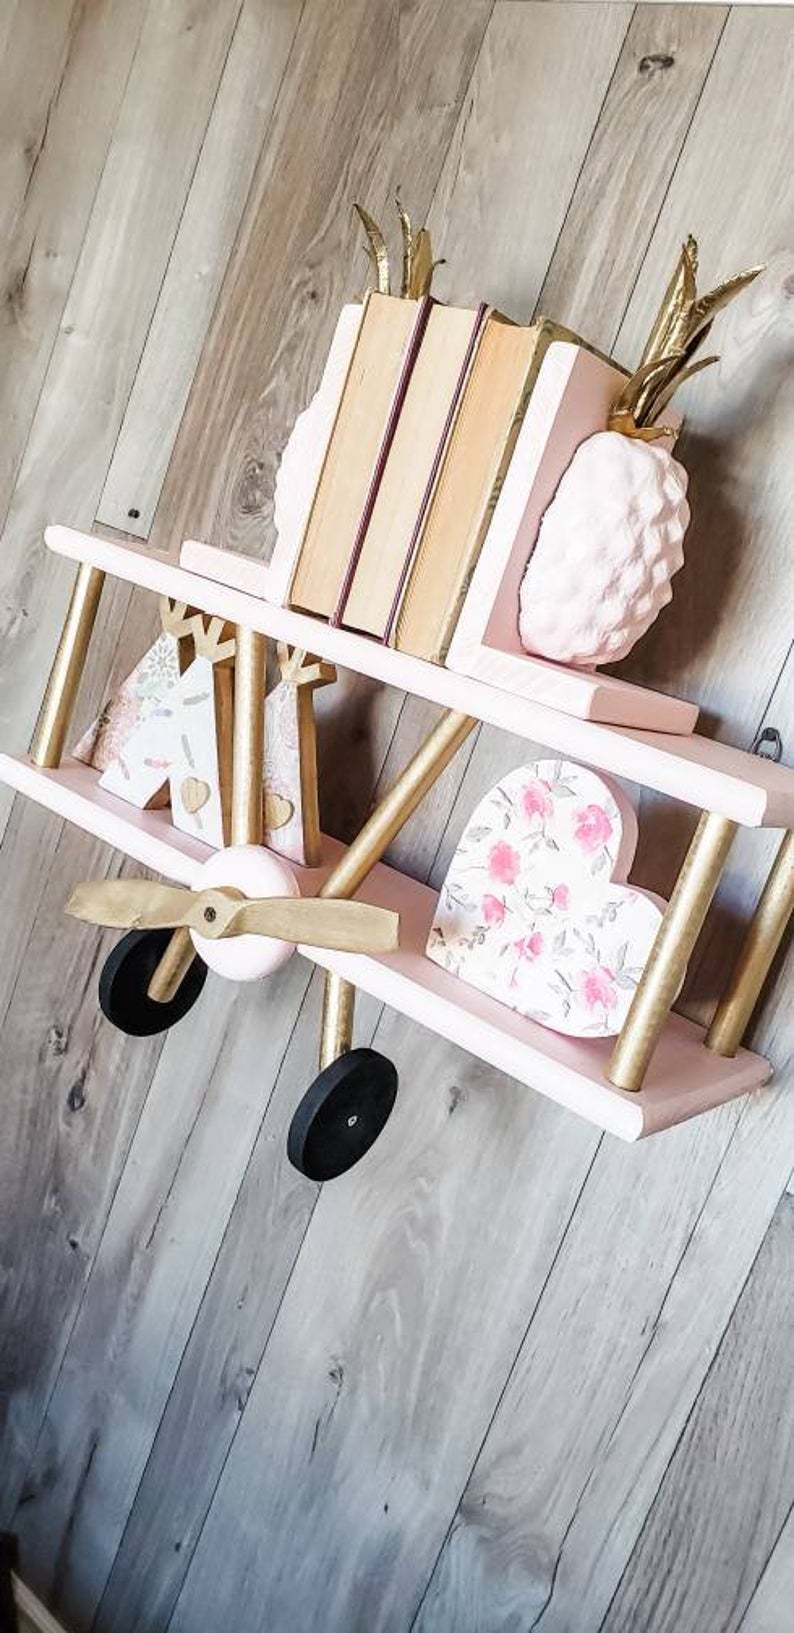 pink and gold wooden biplane shelf with books, a loveheart and teepee decorations on it.